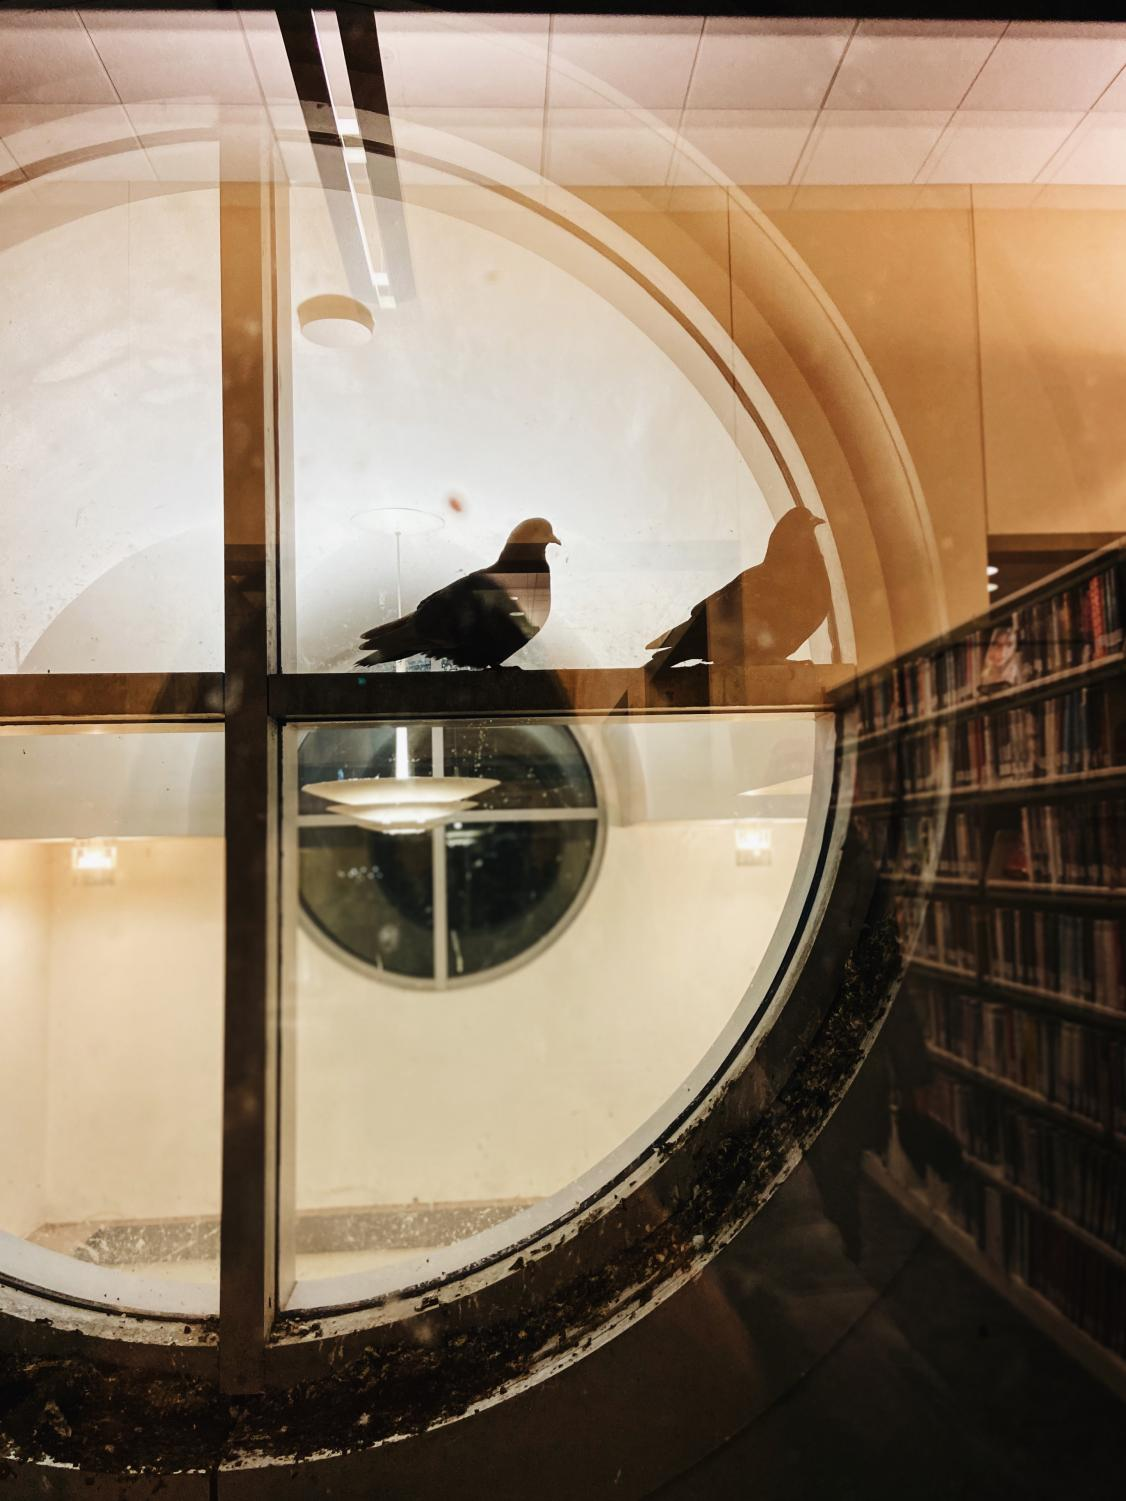 Two+pidgeons+seek+shelter+from+the+cold+in+an+alcove+between+the+exterior+walls+of+the+Iowa+City+Public+Library.+%28free+form%29